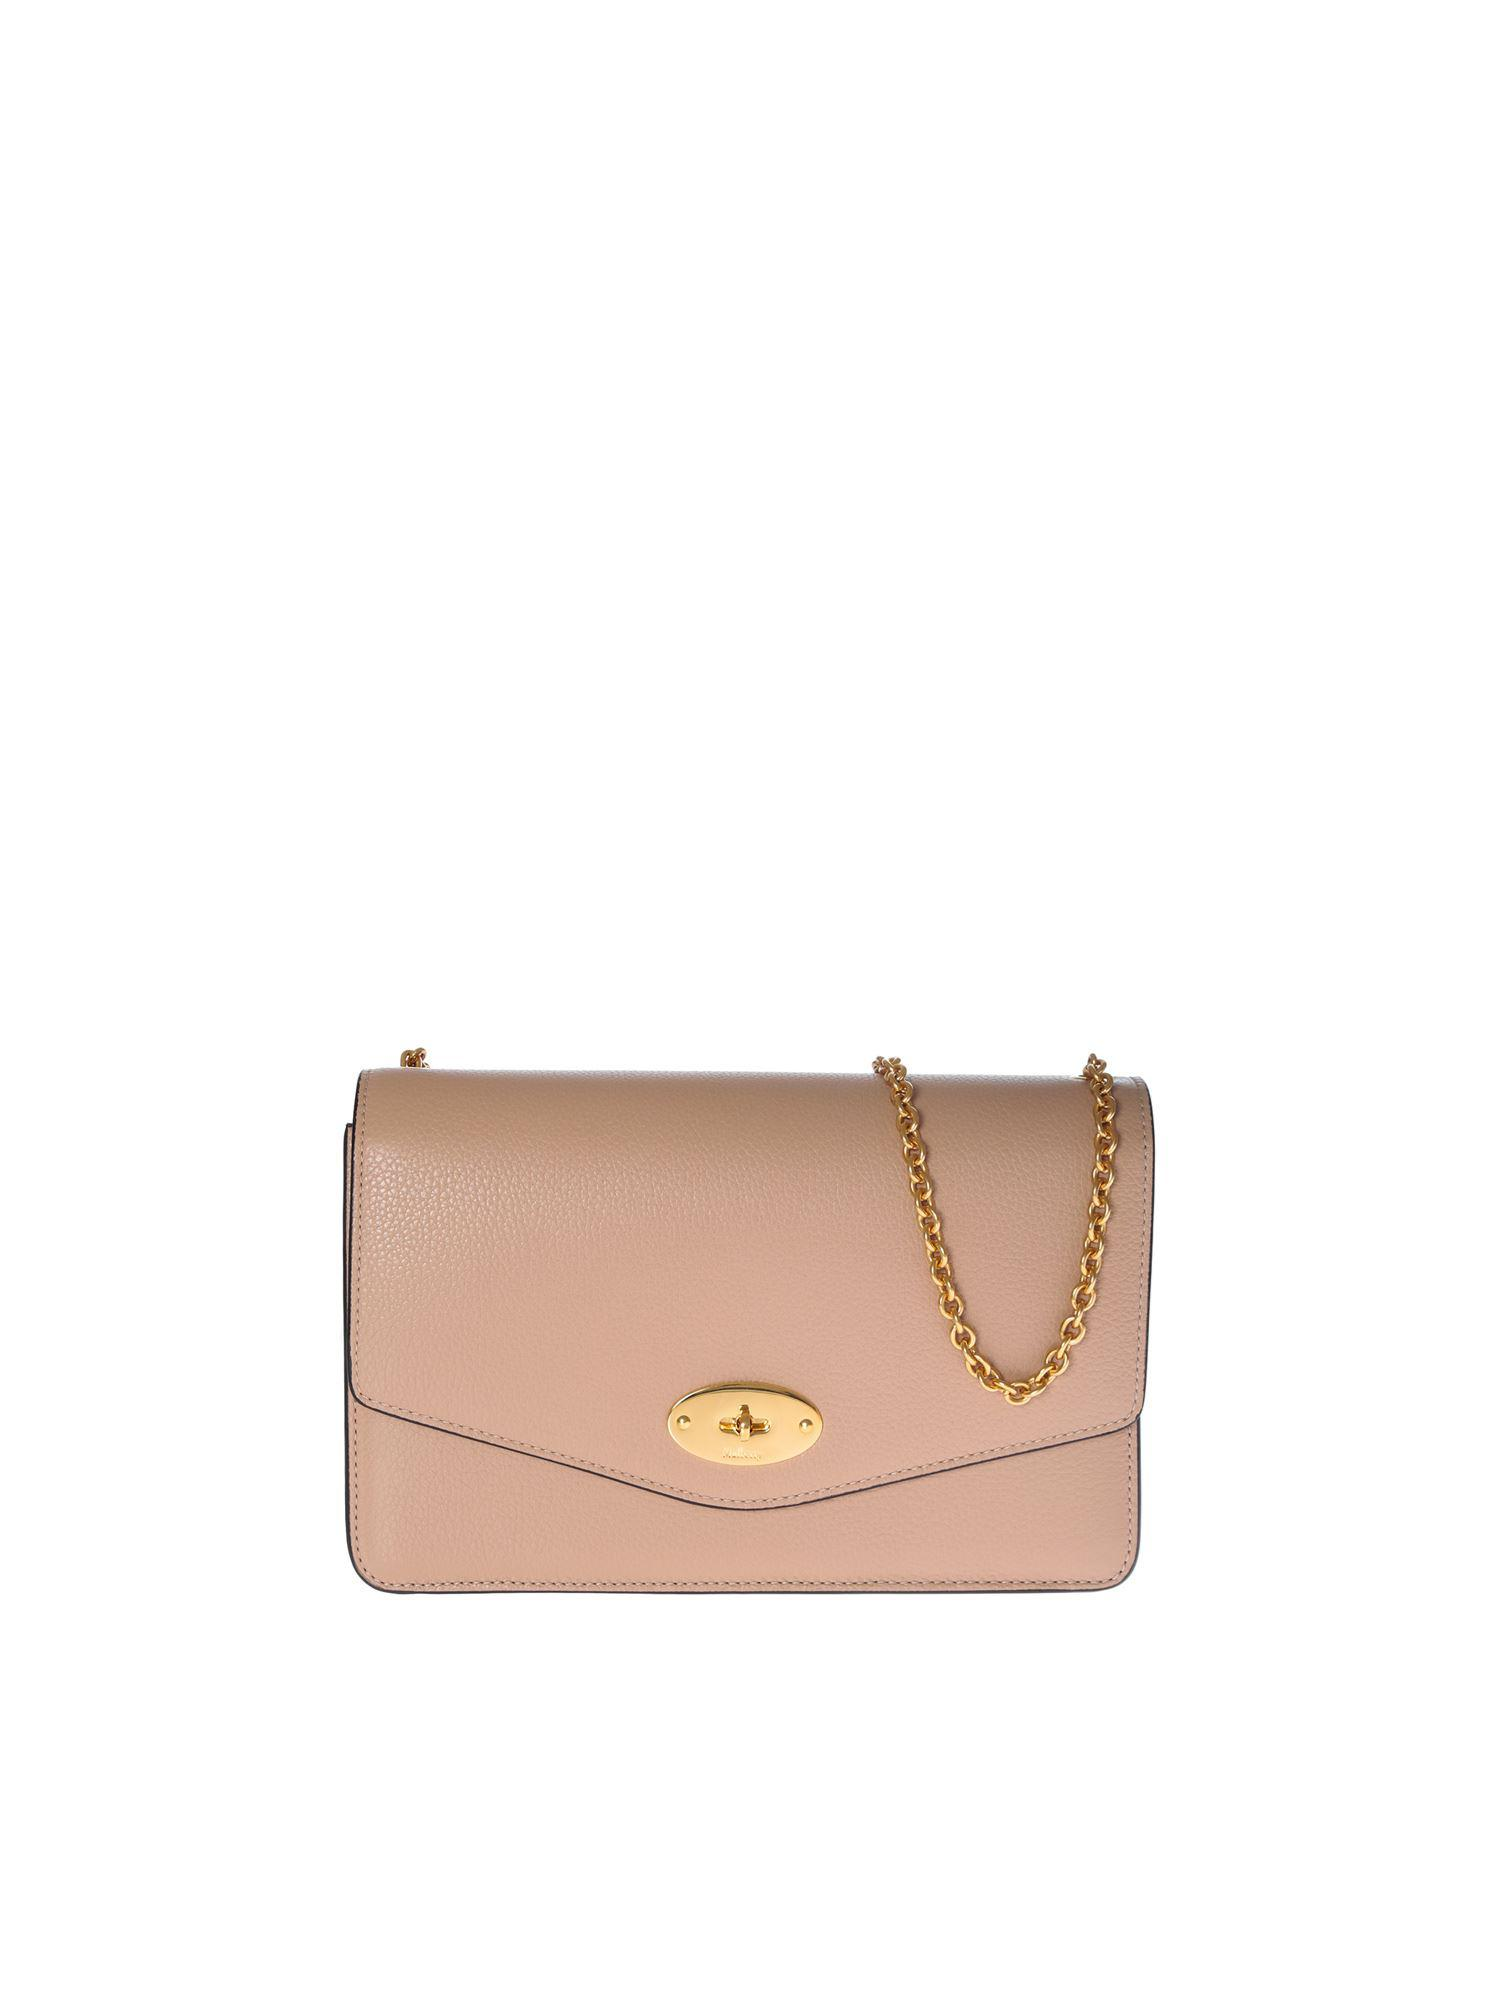 2a7b70aa0d Lyst - Mulberry Darley Bag In Pink Grained Leather in Pink